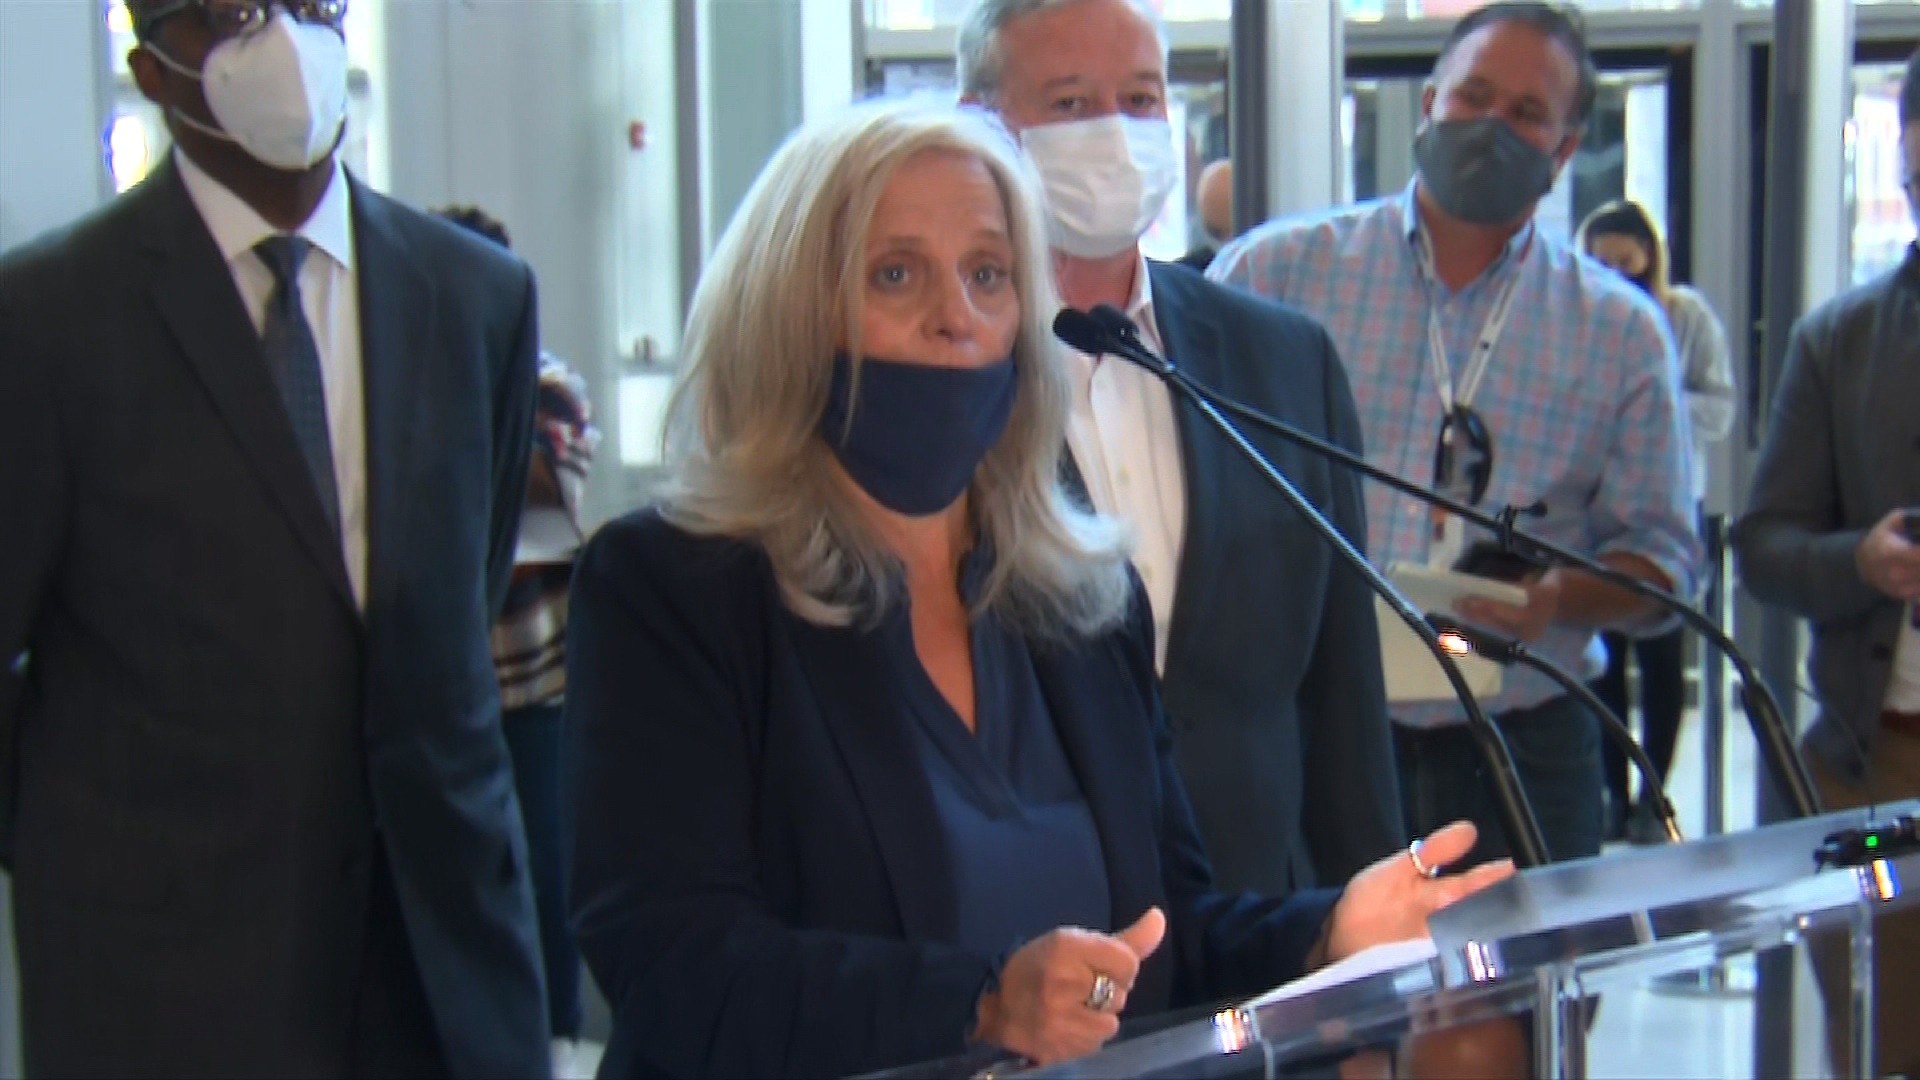 Lisa Deeley, chair of the Philadelphia City Commissioners, speaks during a press conference on November 6 in Philadelphia.